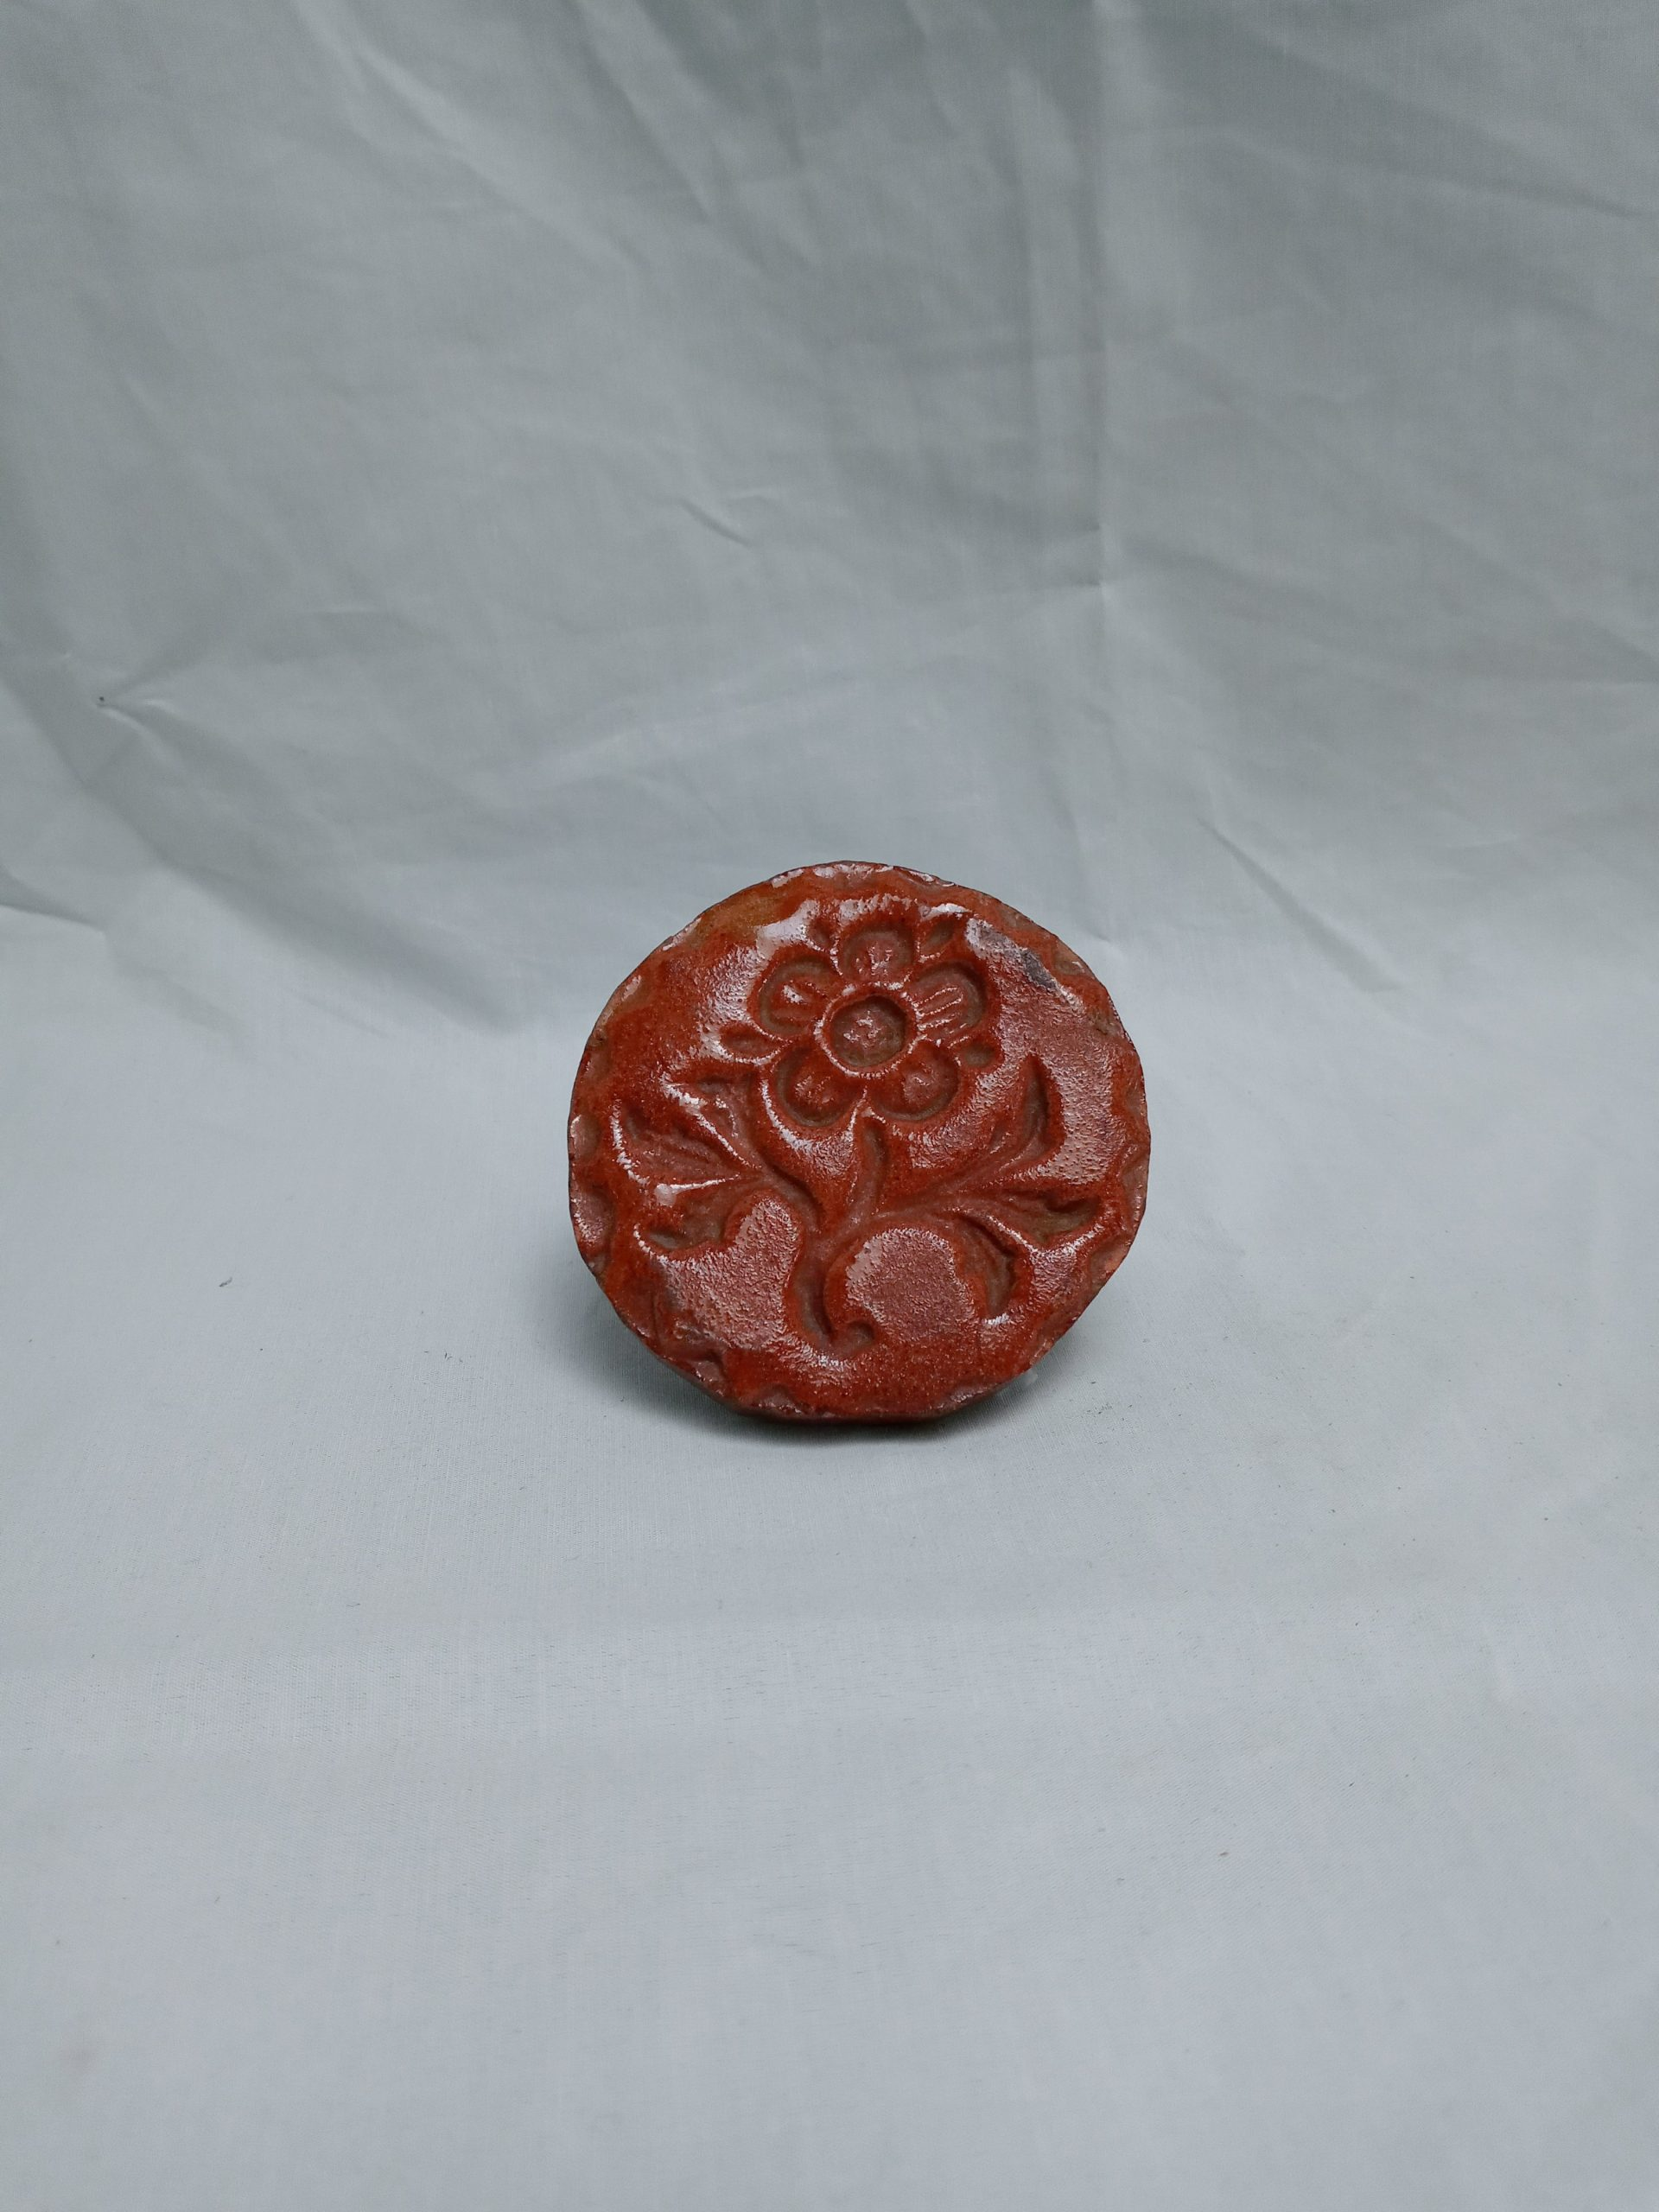 19-33238 Rare and unusual Redware Pottery butter print, floral impressed design, Pro. Pennsylvania. 19th Century. Image